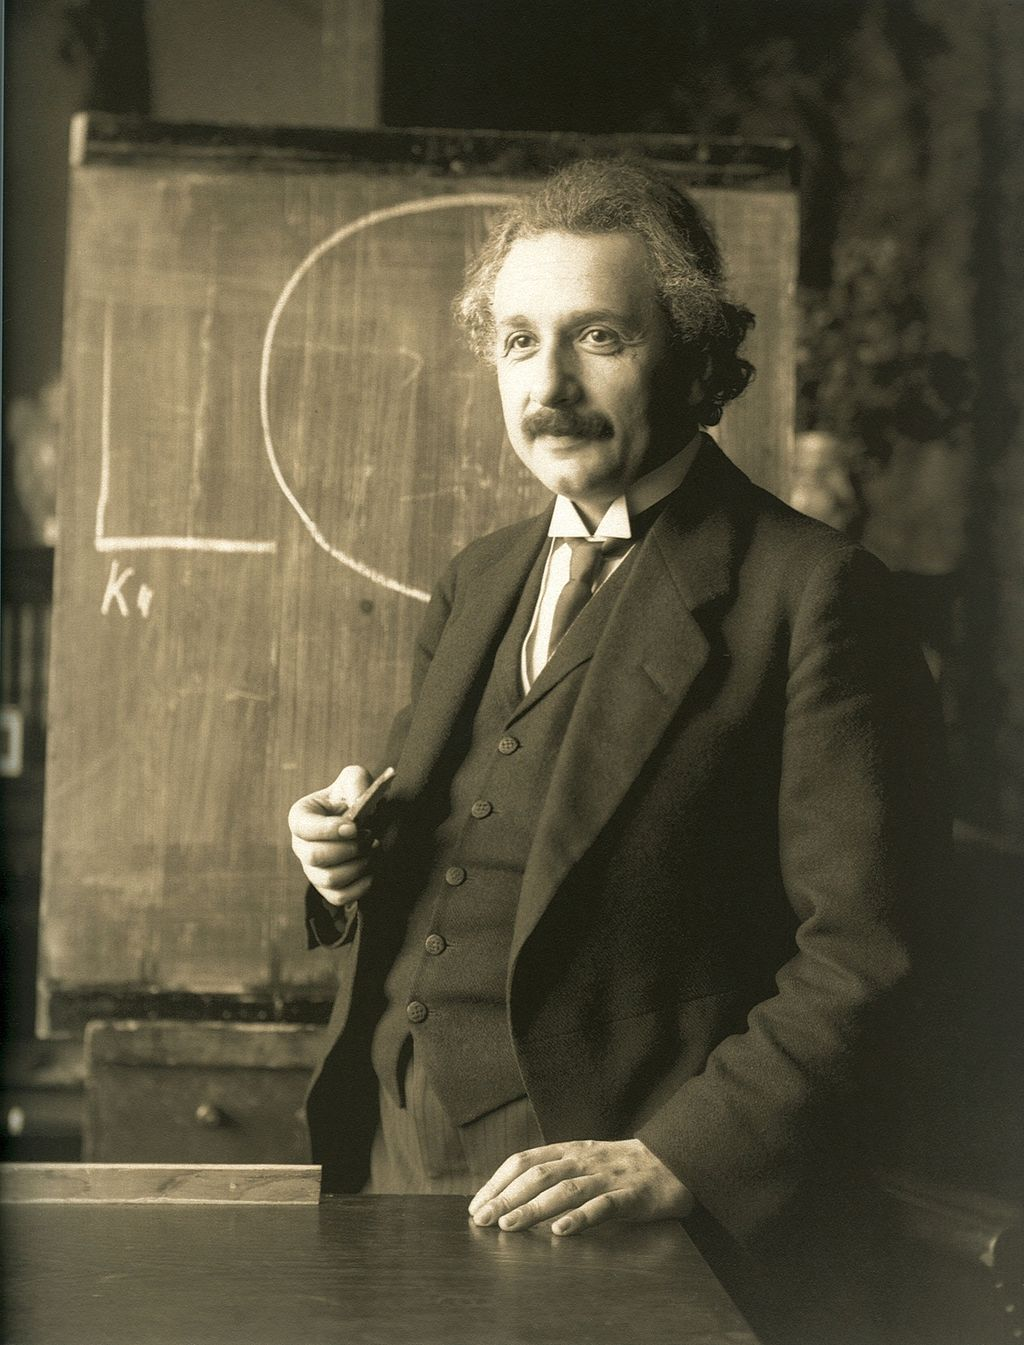 Albert Einstein during a lecture in Vienna in 1921 Source: Wikimedia Commons